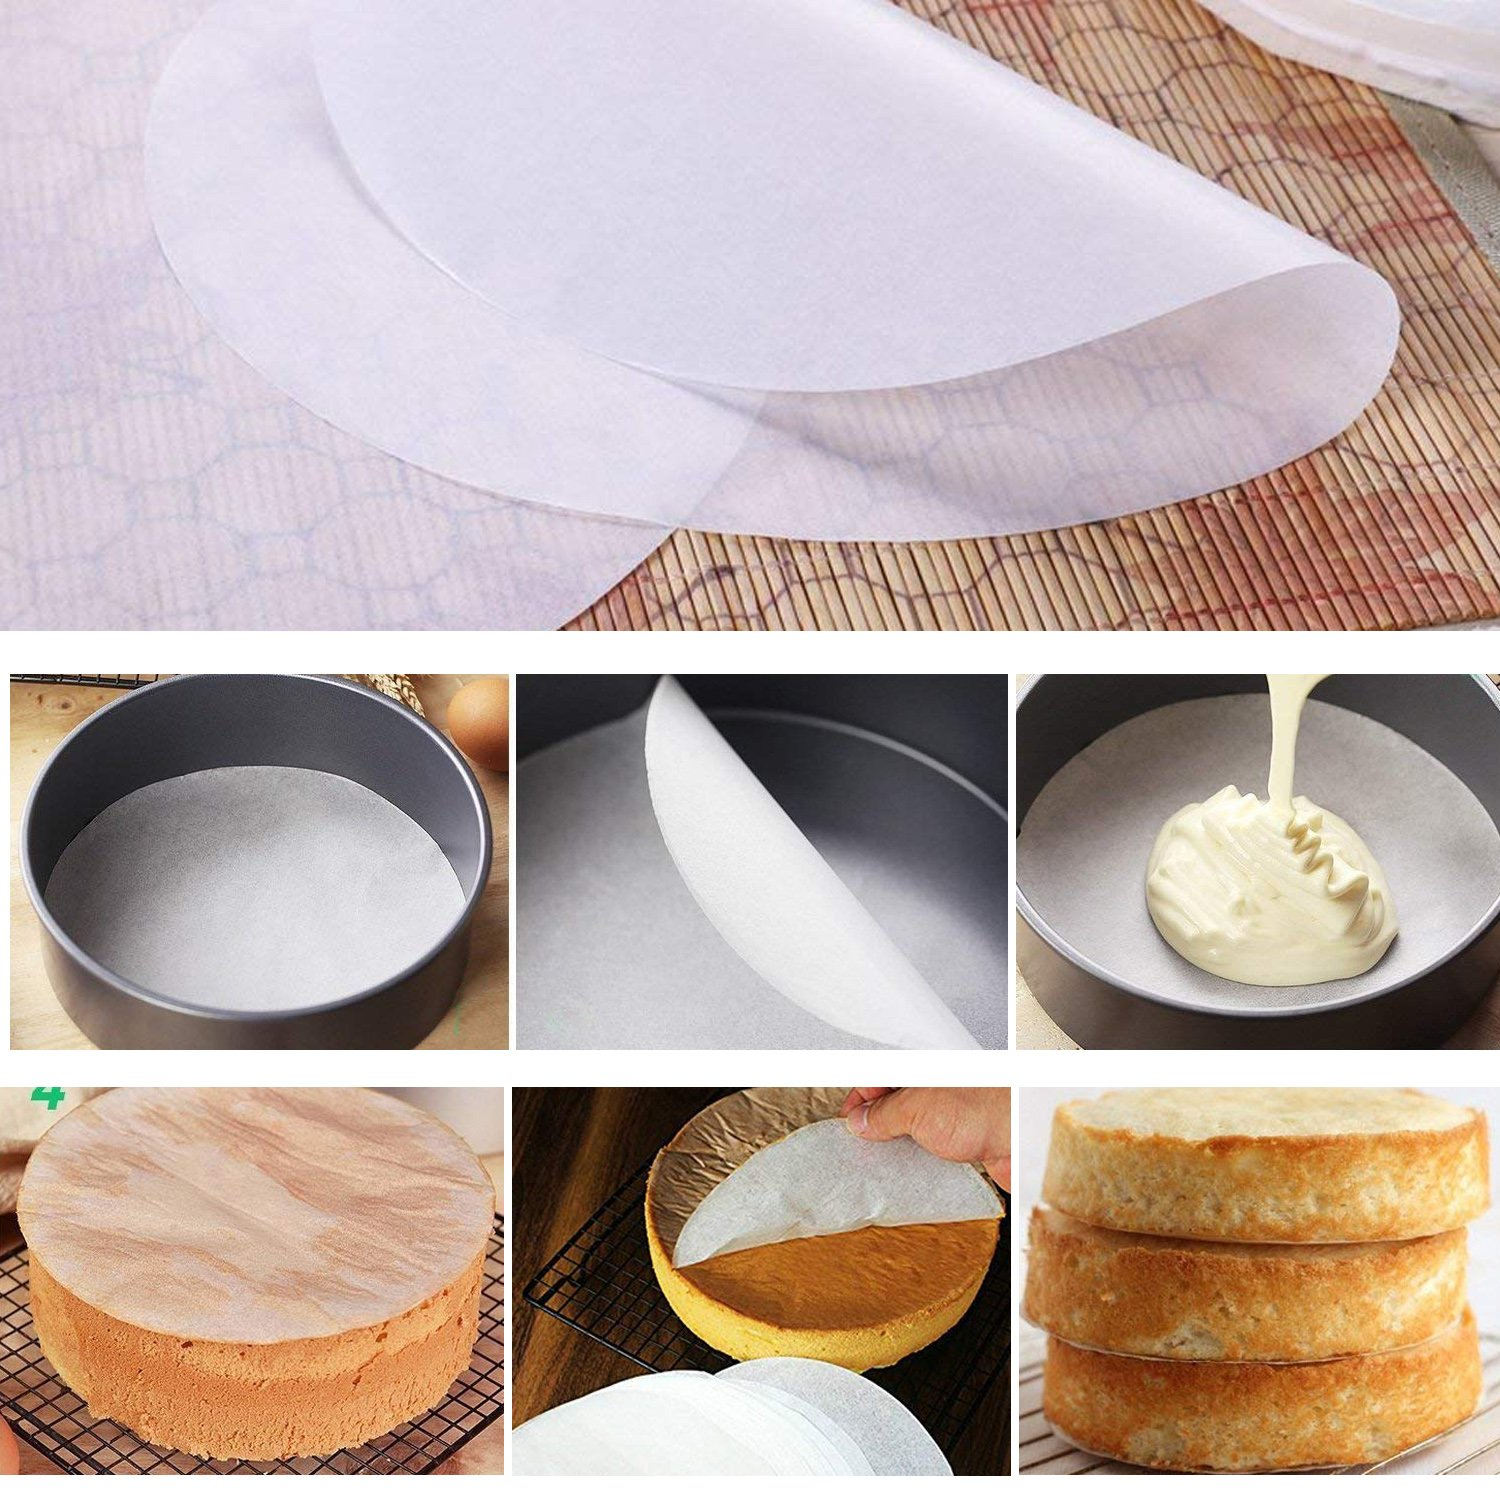 4'' 7'' 9'' Springform Cake Pan and 150-piece Parchment Paper Liners,Non-stick Round Bakeware Cake Pan 2 Icing Spatula 3 Icing Smoother by Hanyan (Image #5)